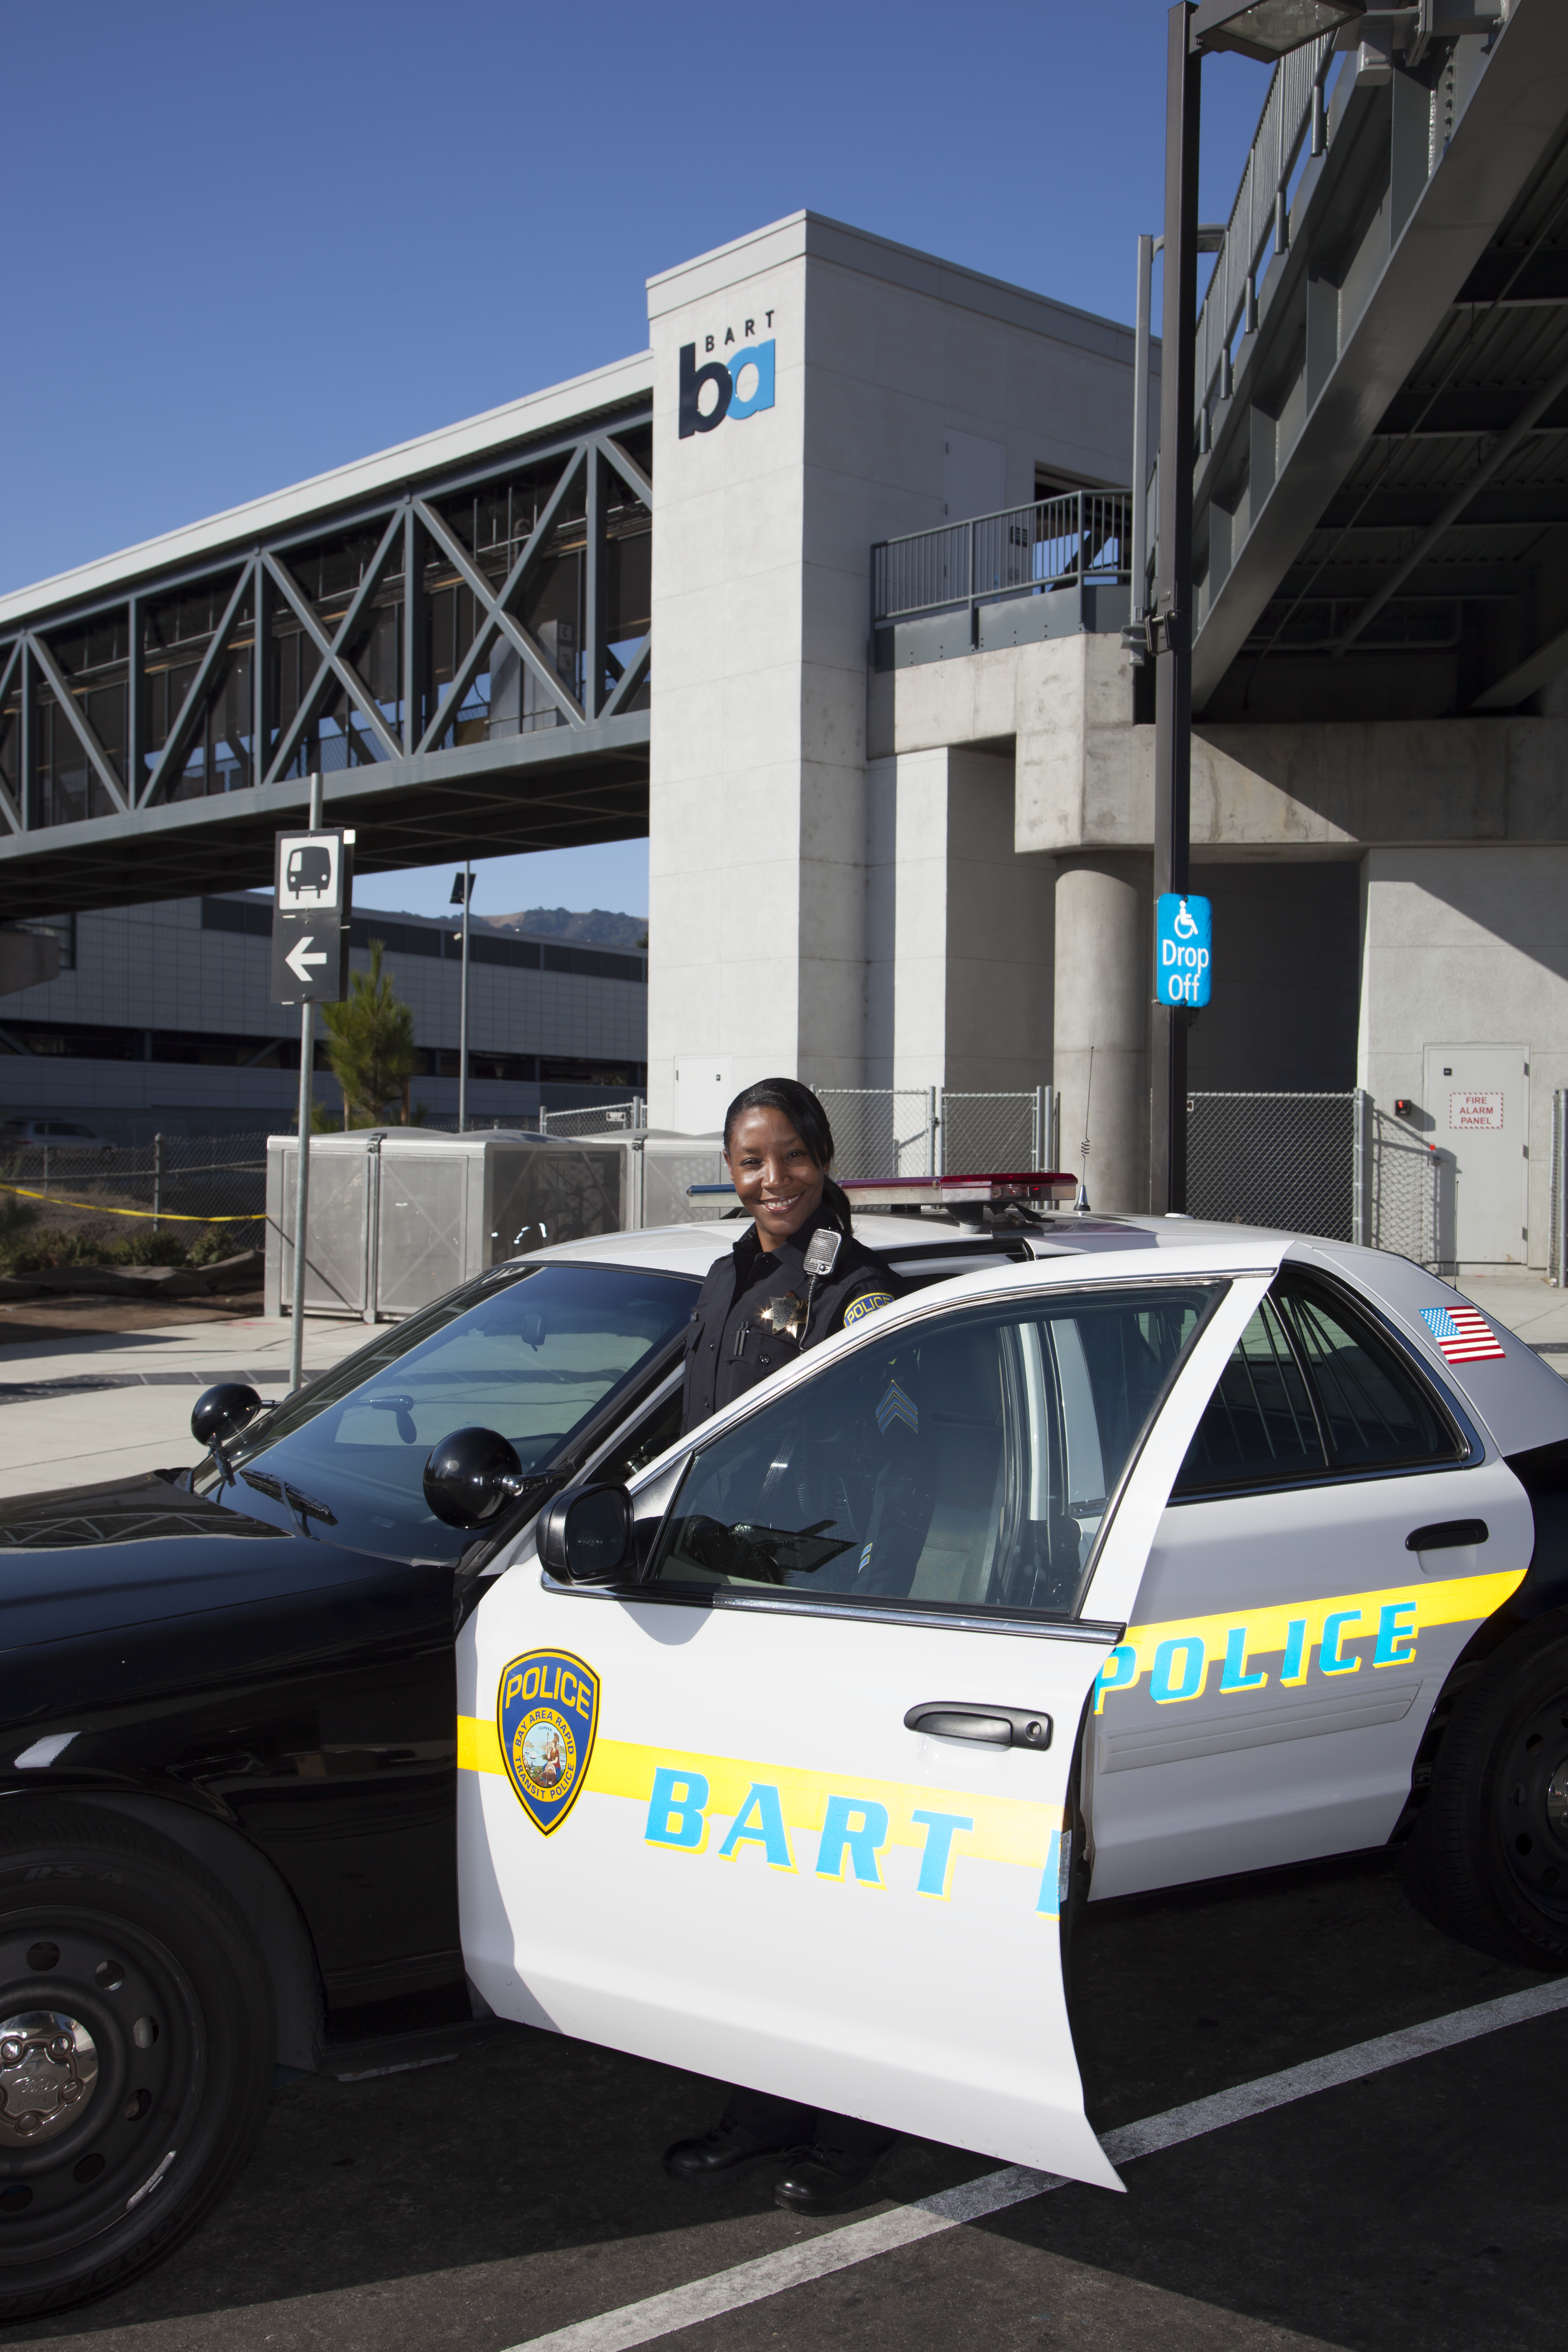 jobs bart gov every day bart employees make a difference in their public service to the san francisco bay area we re seeking high caliber team players who share our